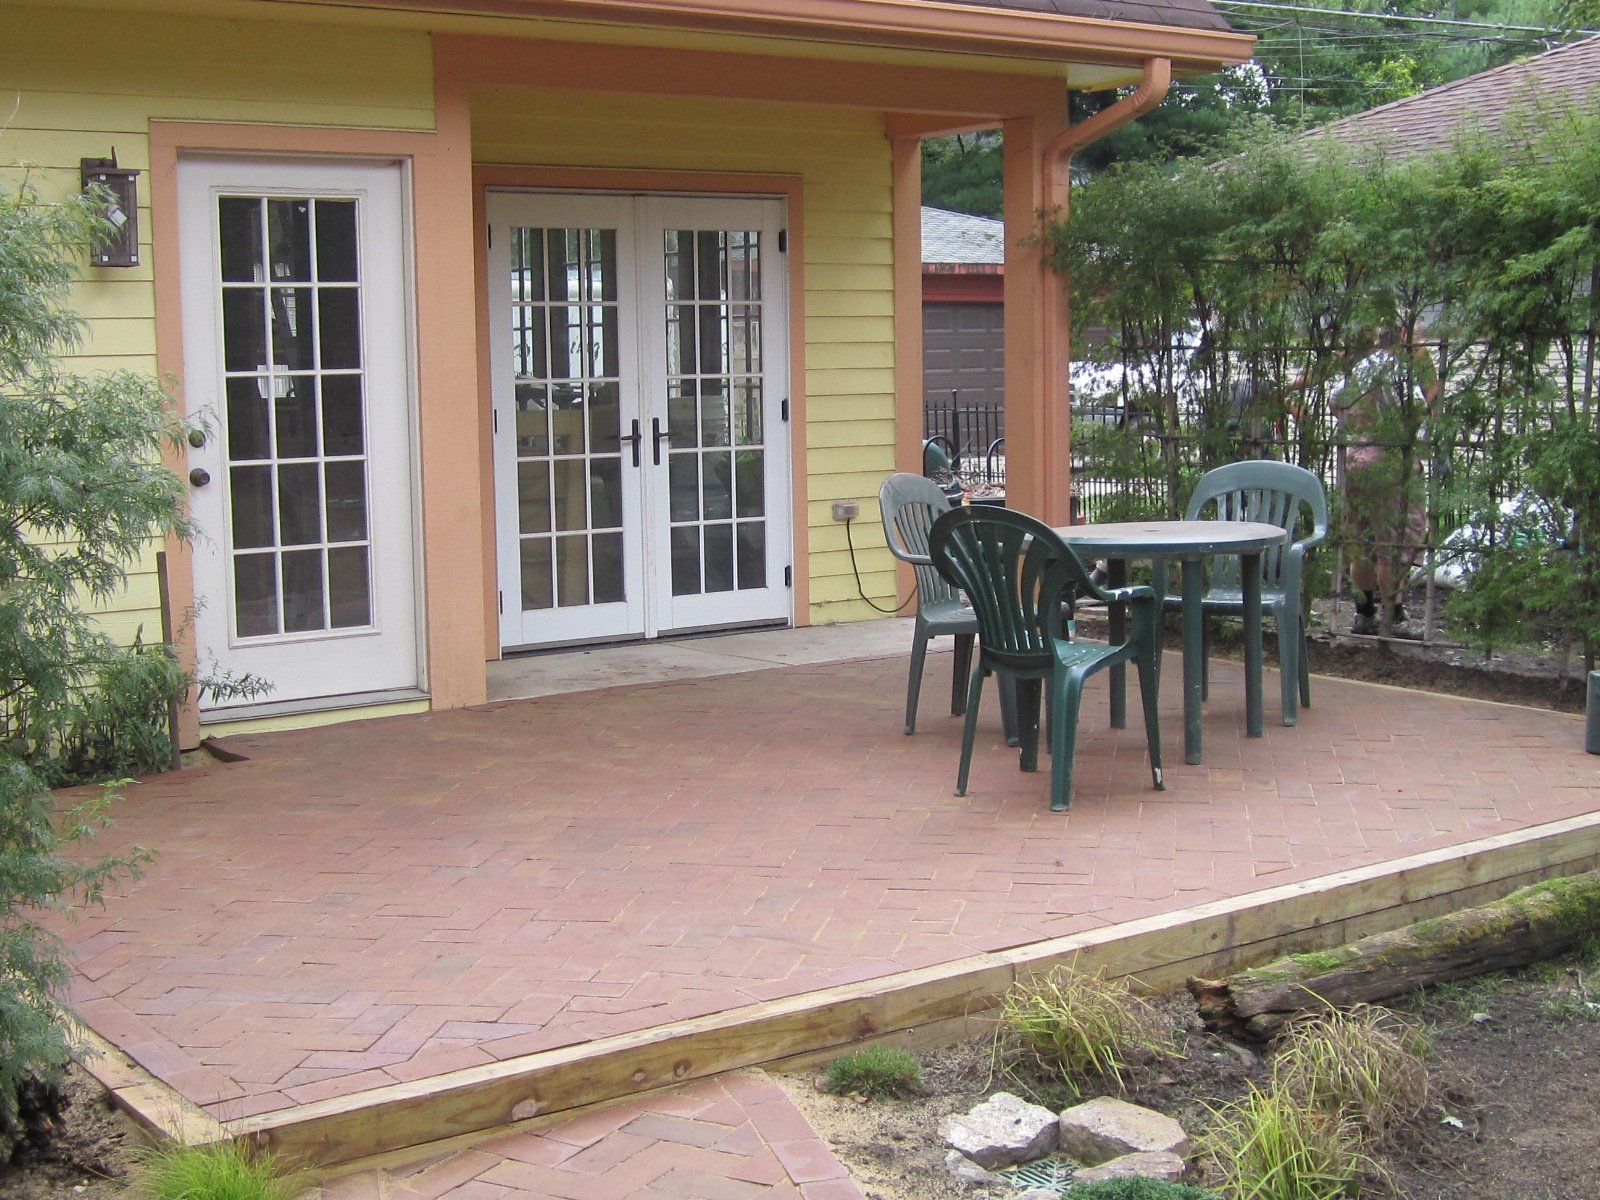 Anns Landscaping image 6